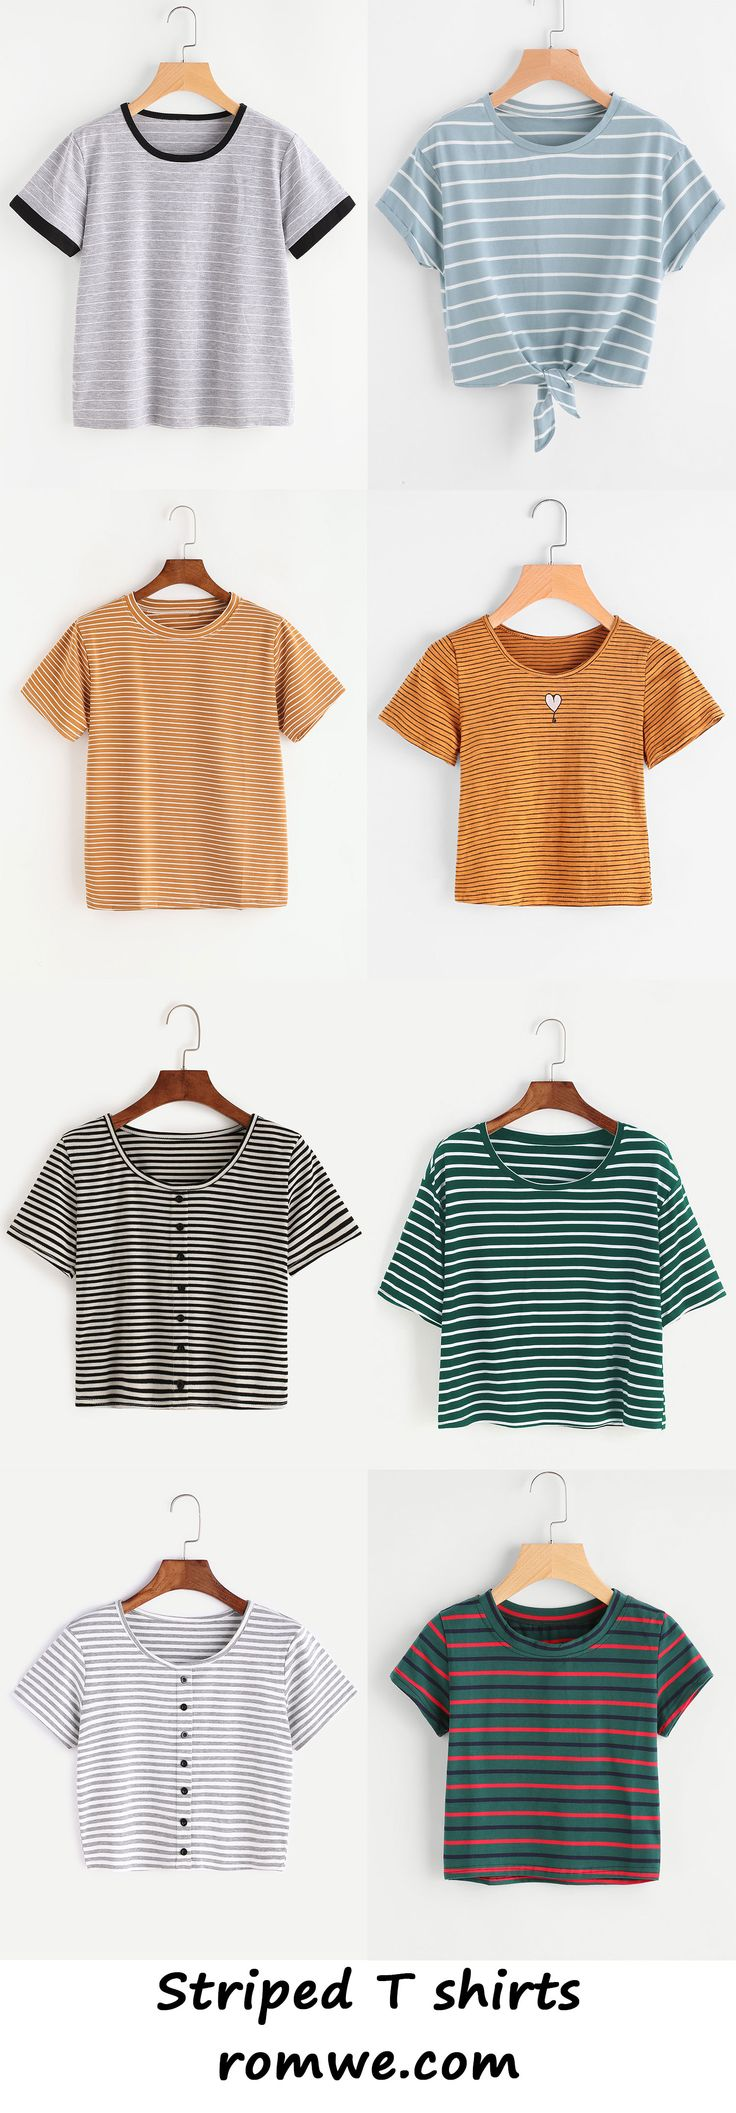 striped t shirts collection 2017 - romwe.com